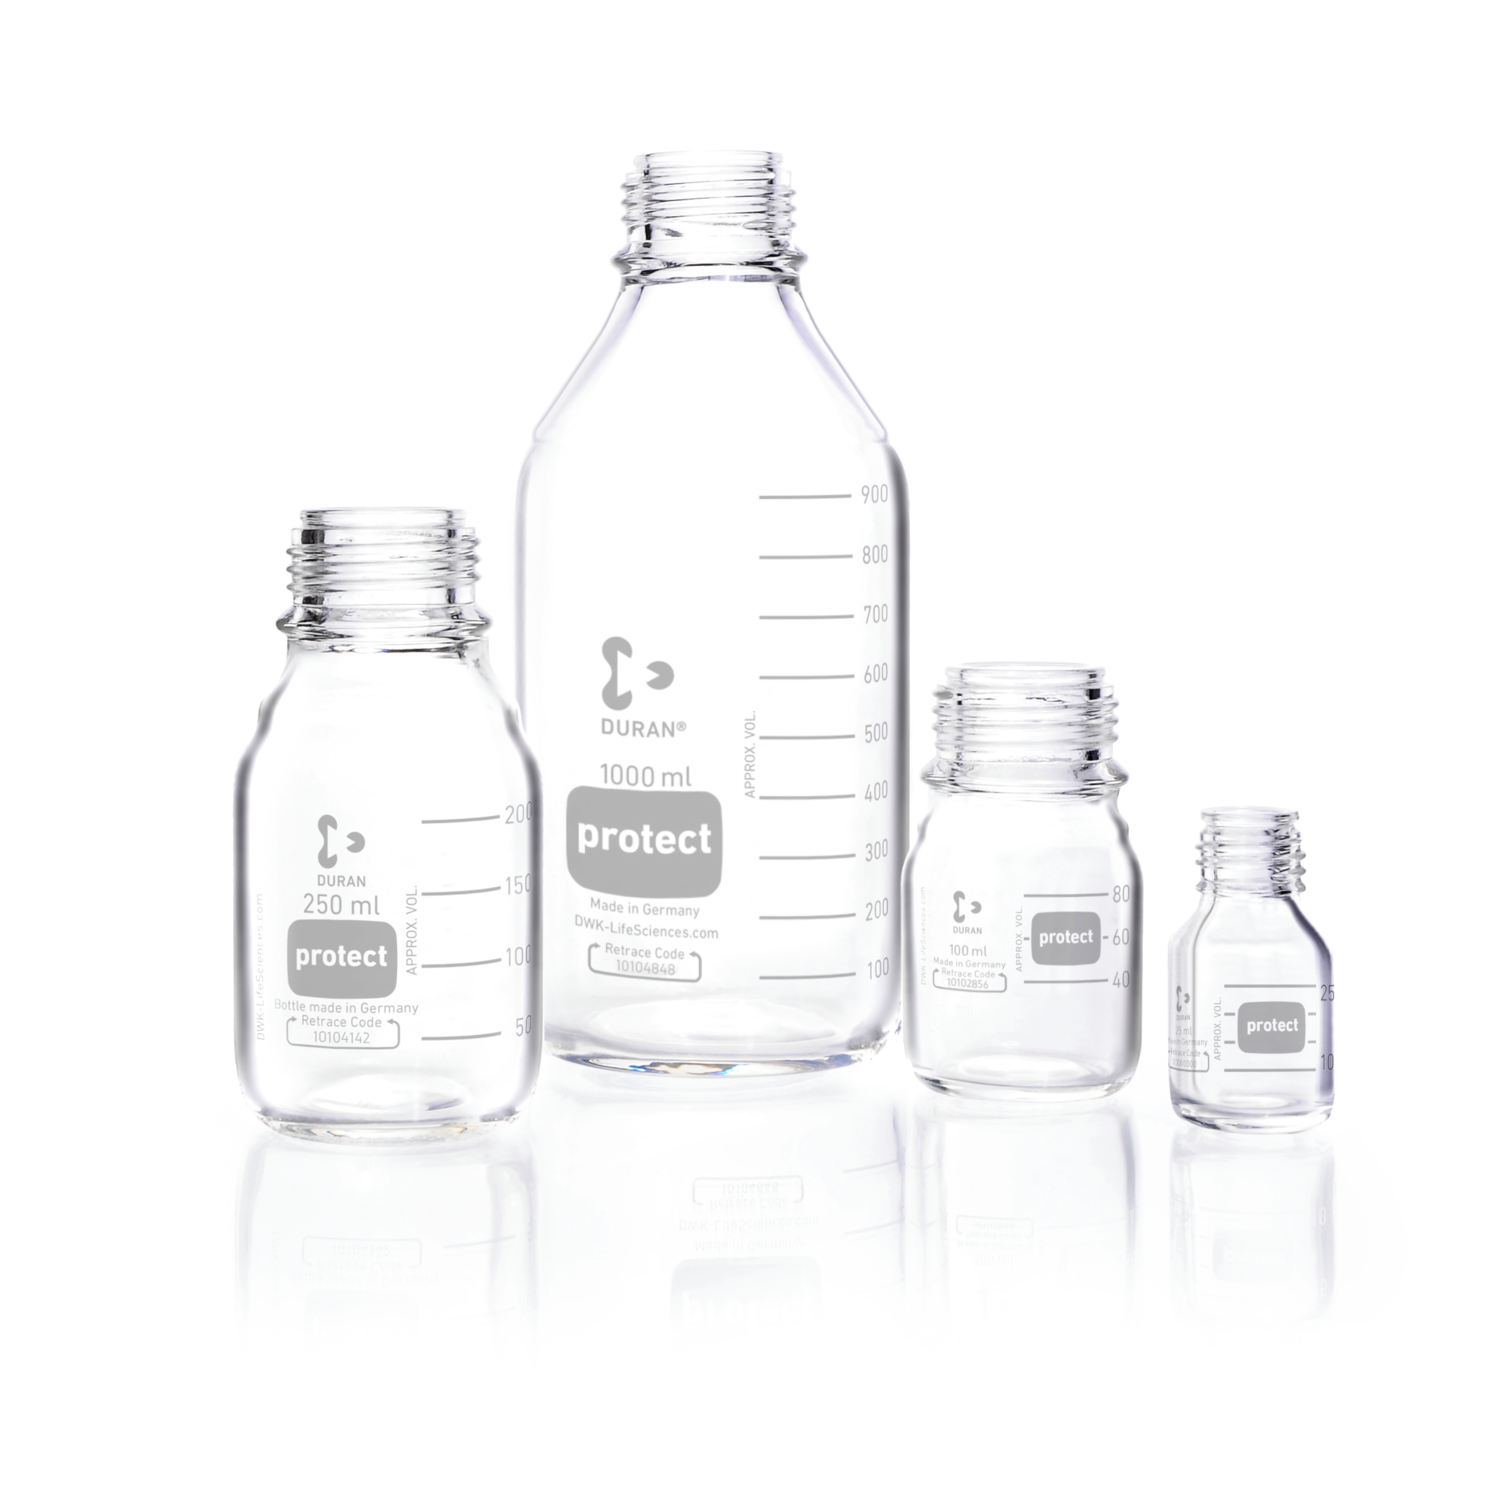 DURAN® protect GL 45 Laboratory Bottle, clear, plastic safety coated, without screw cap and pouring ring, 5000 mL